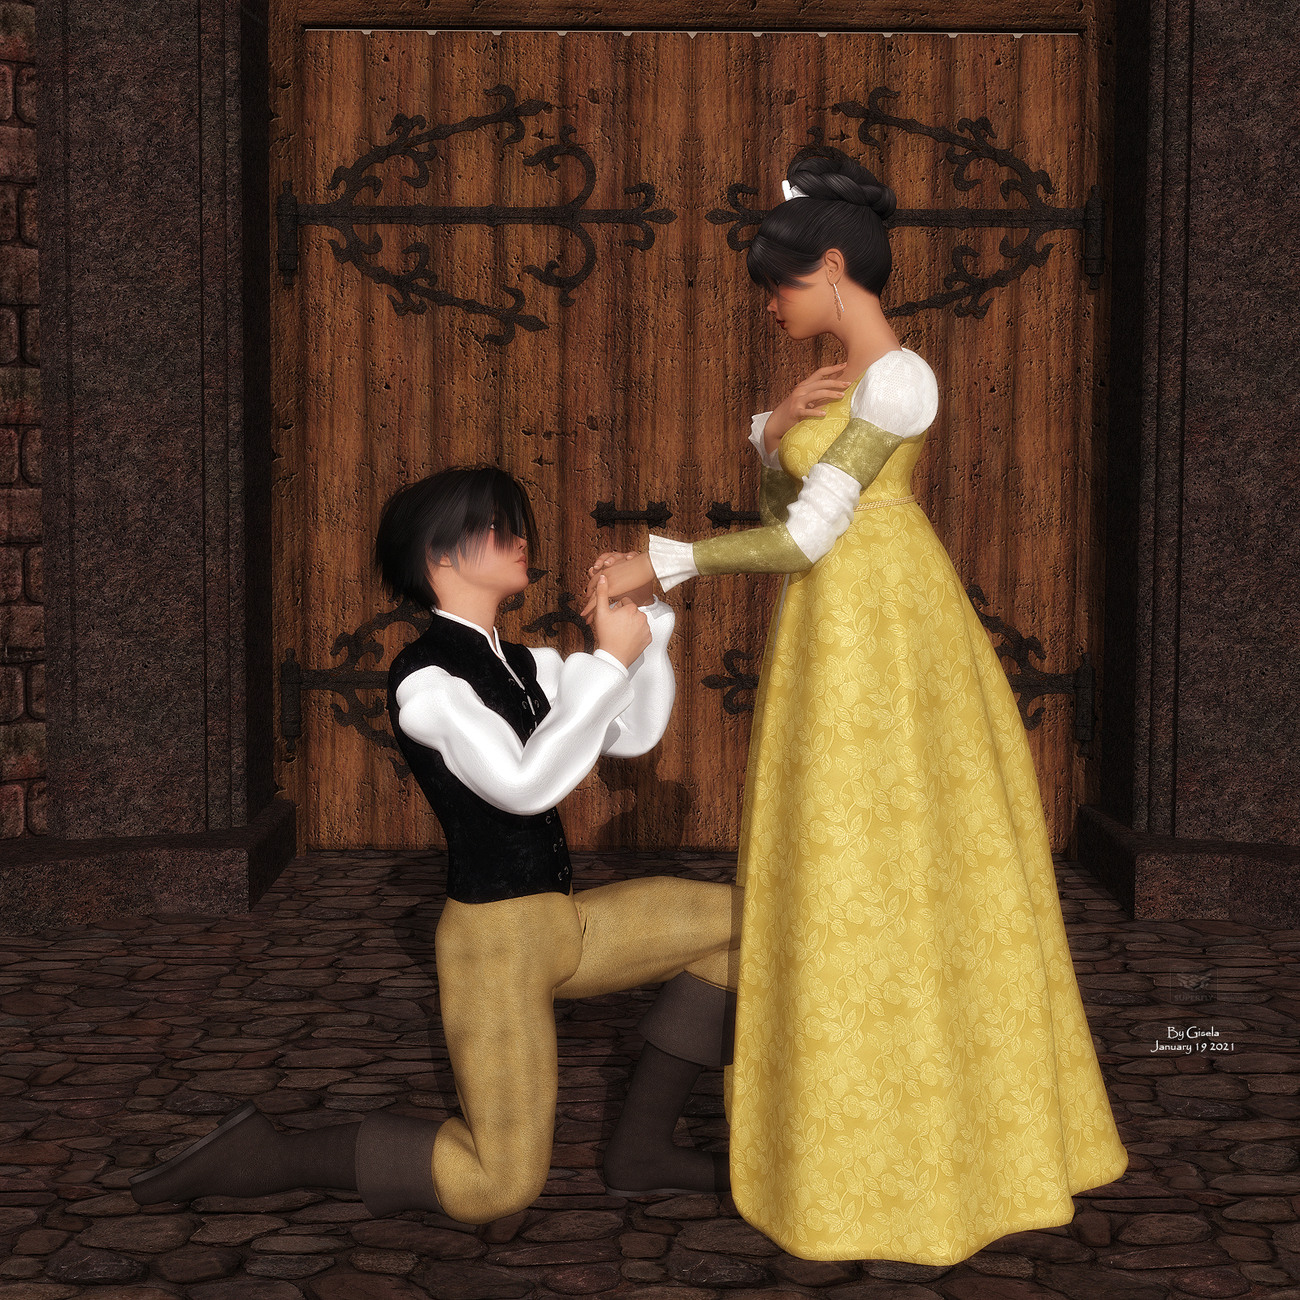 The Proposal by Gisela